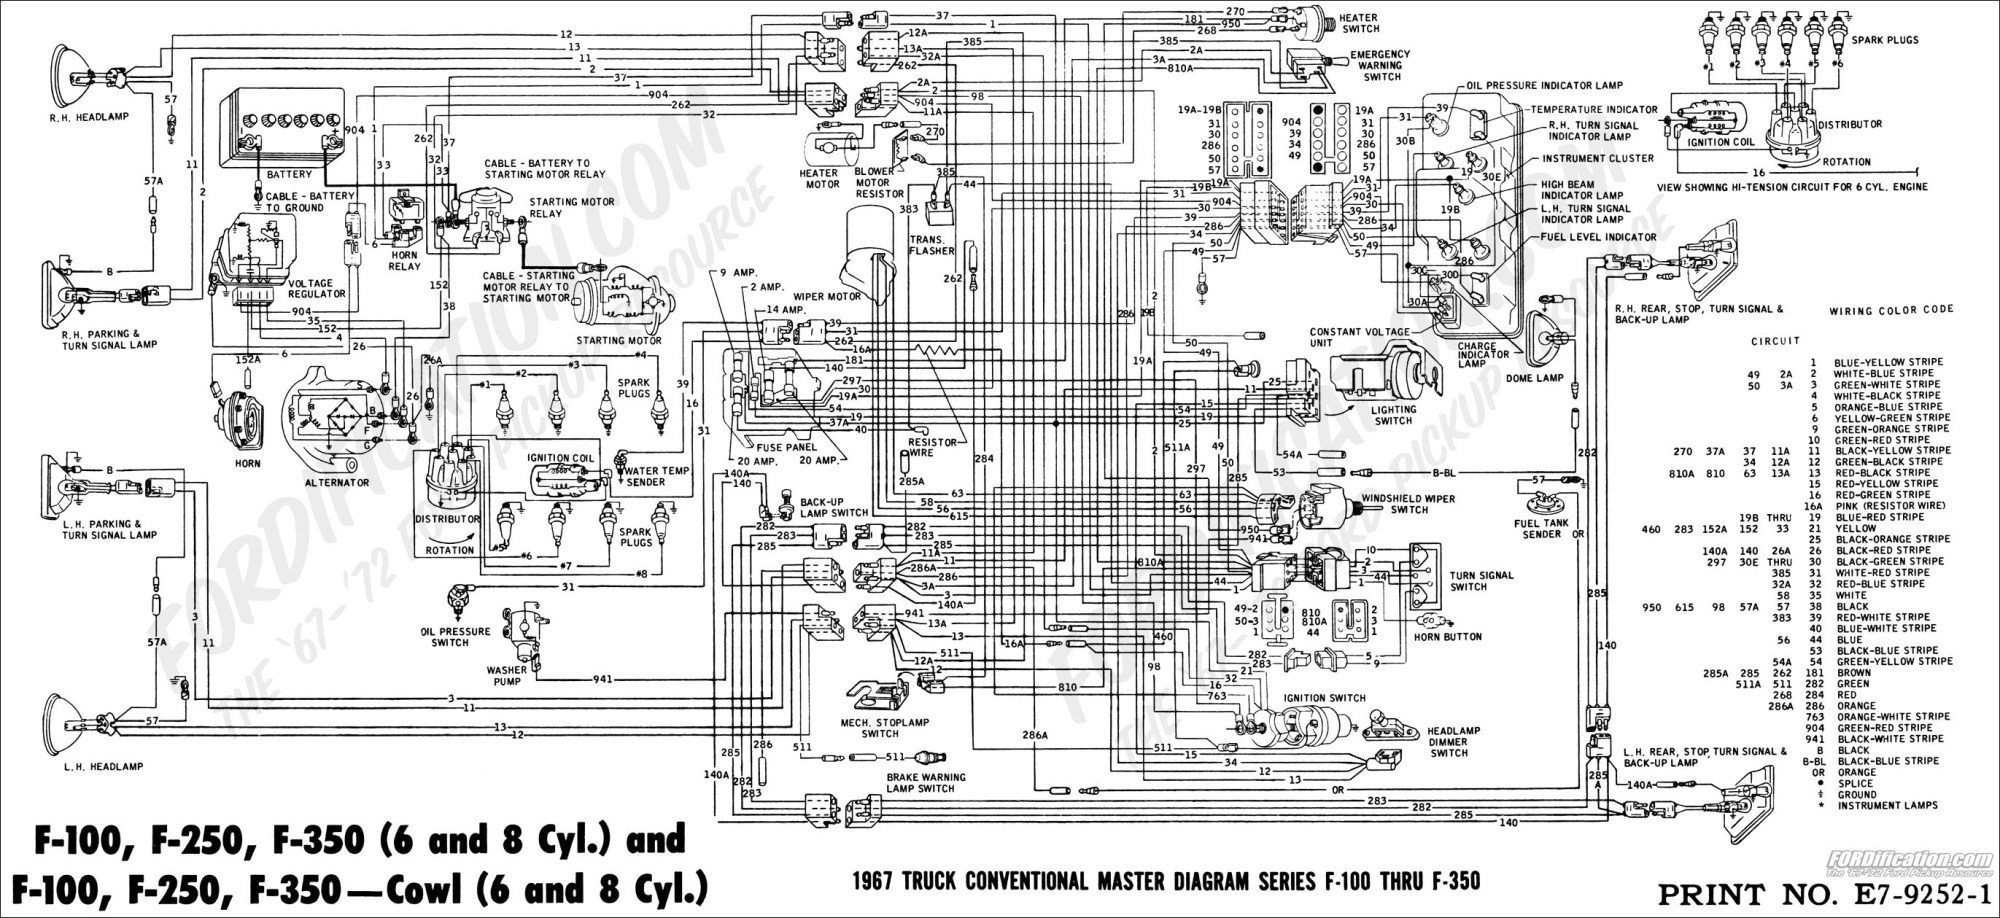 hight resolution of wiring diagram for 1995 ford f150 wiring diagram paper 1995 f150 engine wiring diagram 1995 f150 wiring diagram